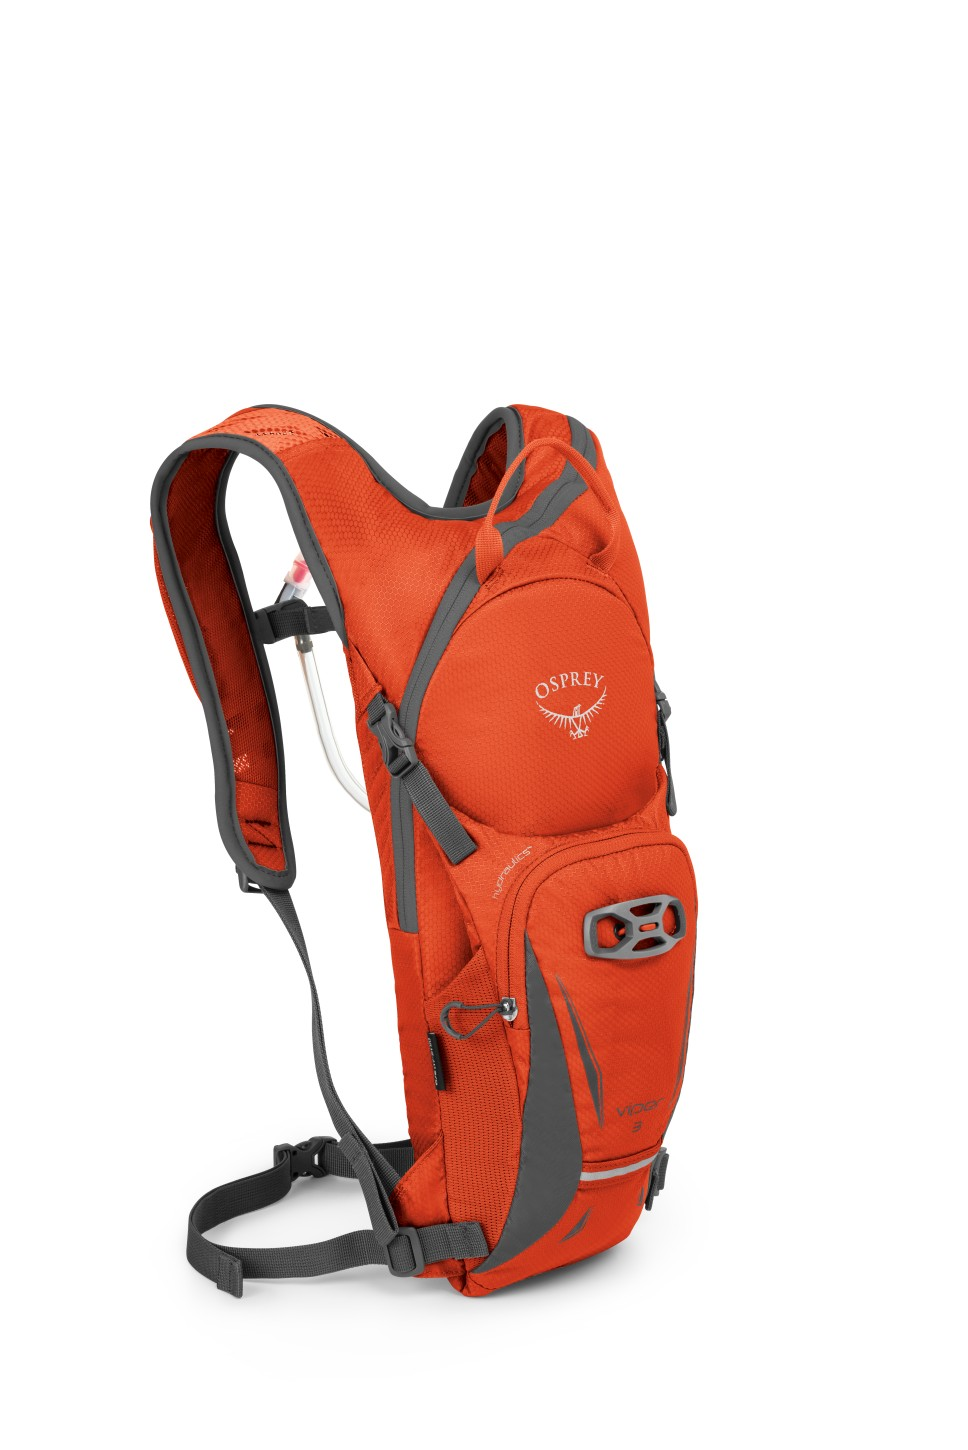 Osprey Viper 3 O/S Blaze Orange-30